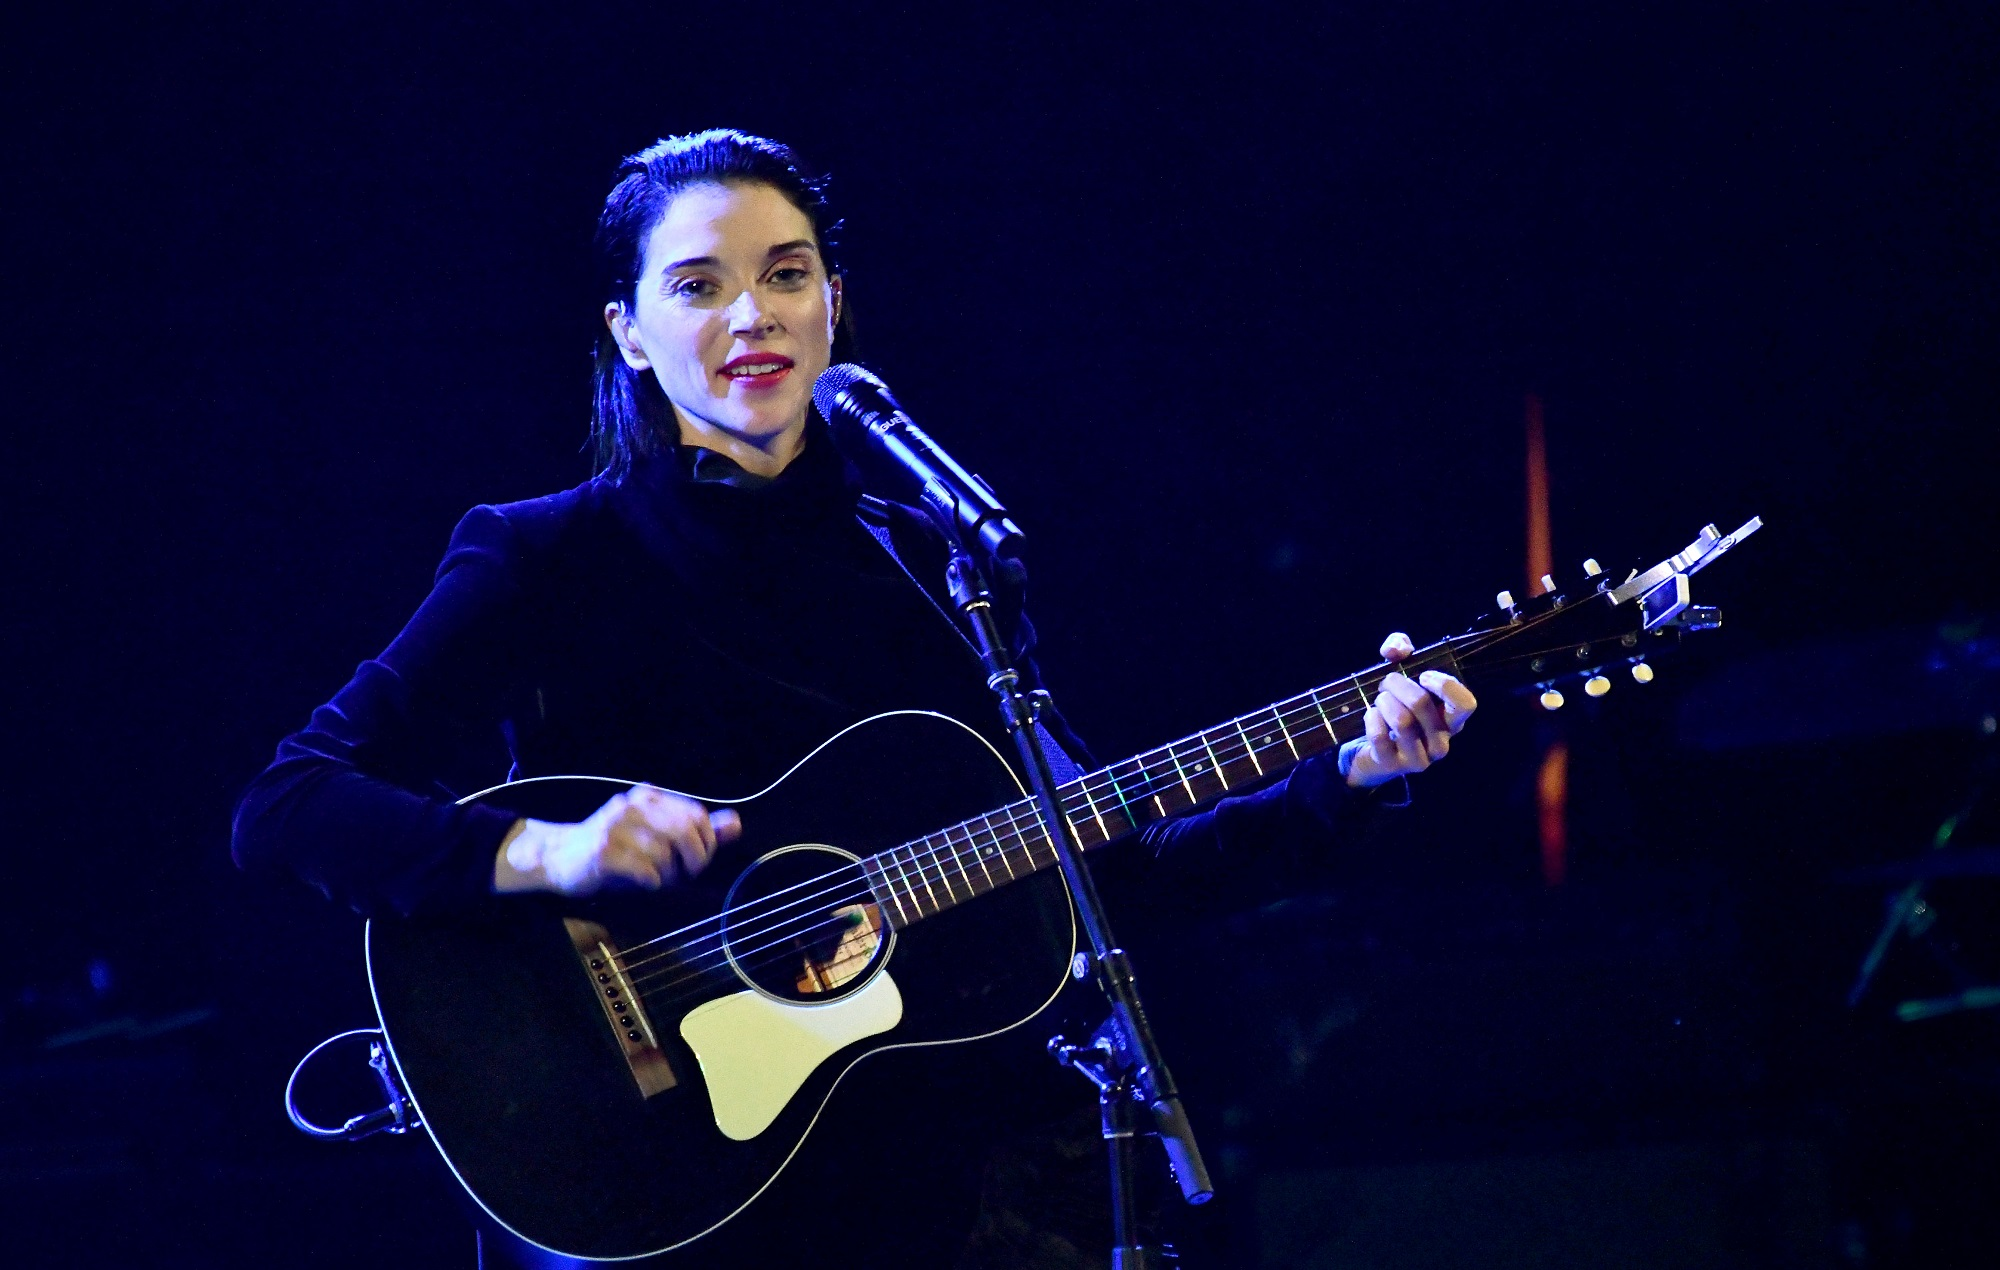 Watch St Vincent nail an acoustic cover of Red Chili